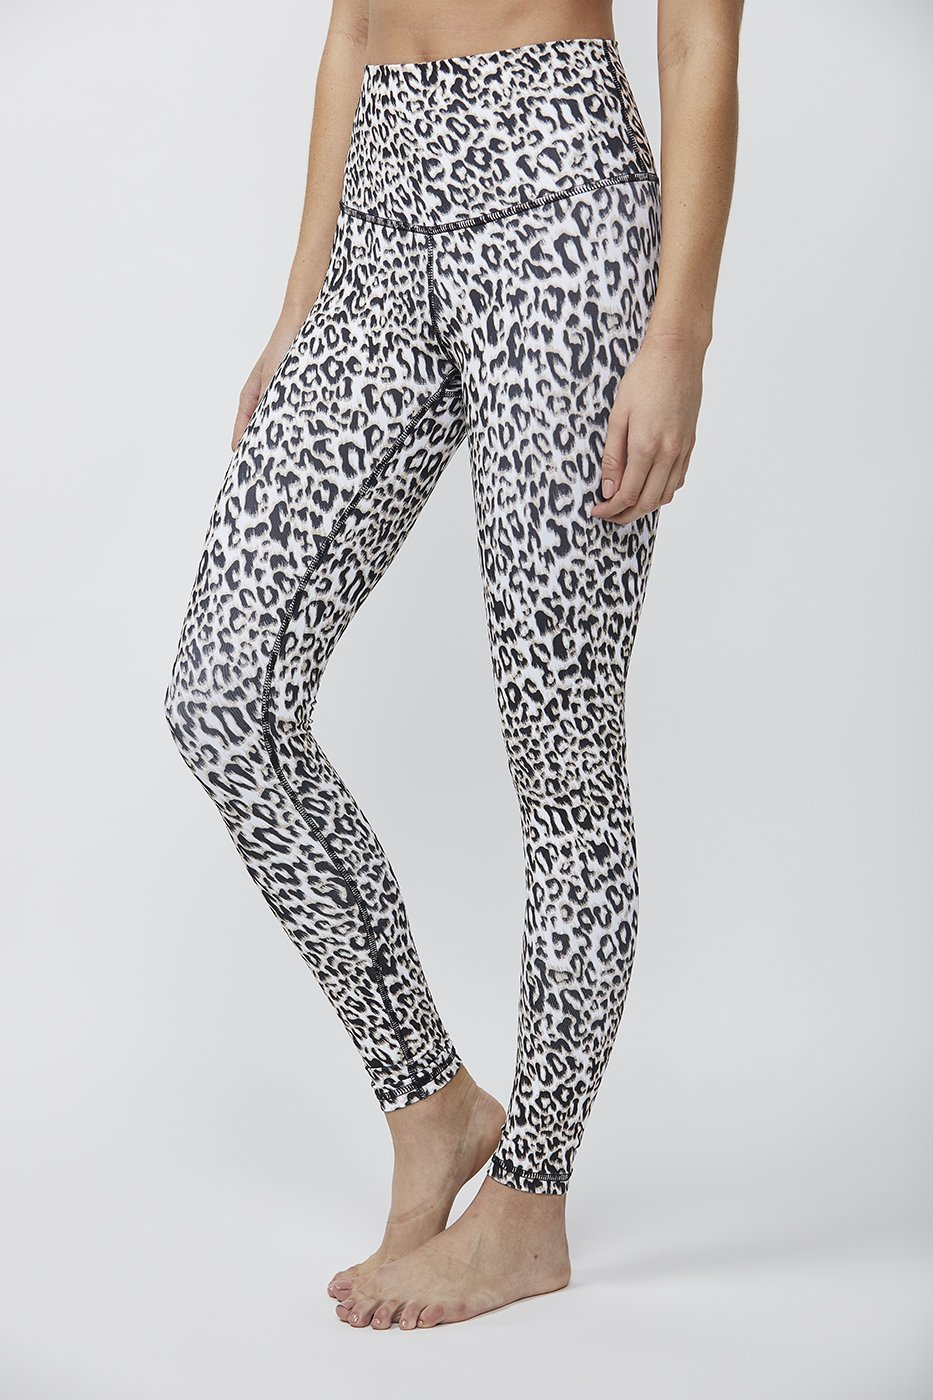 Printed Signature Tight Leopard Black Brown, TIGHT - shopdyi.com